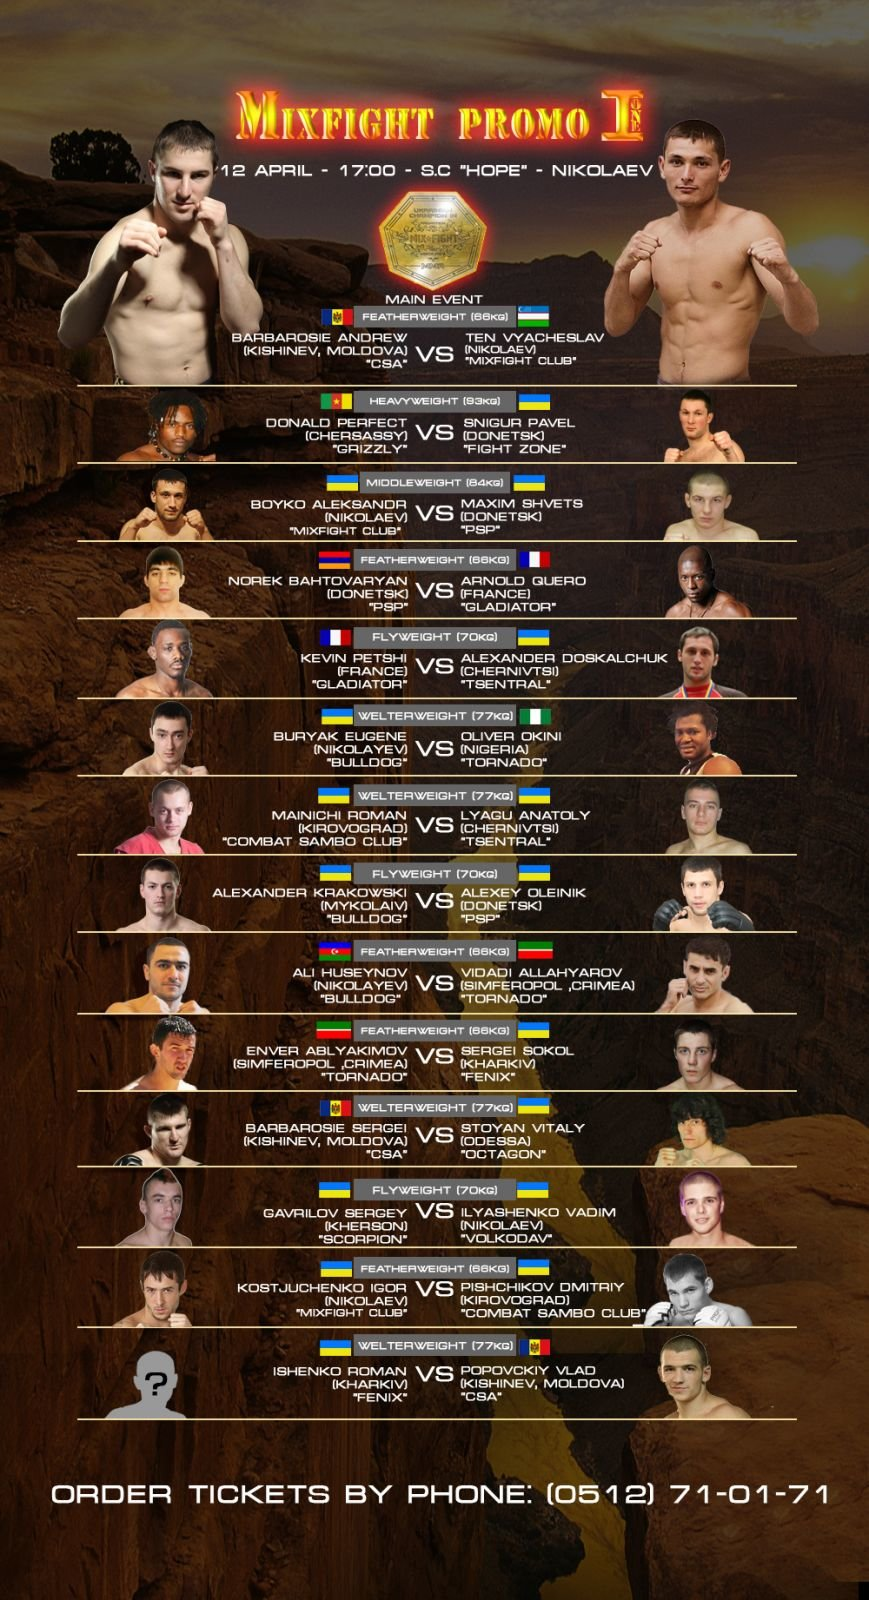 new fight card copy